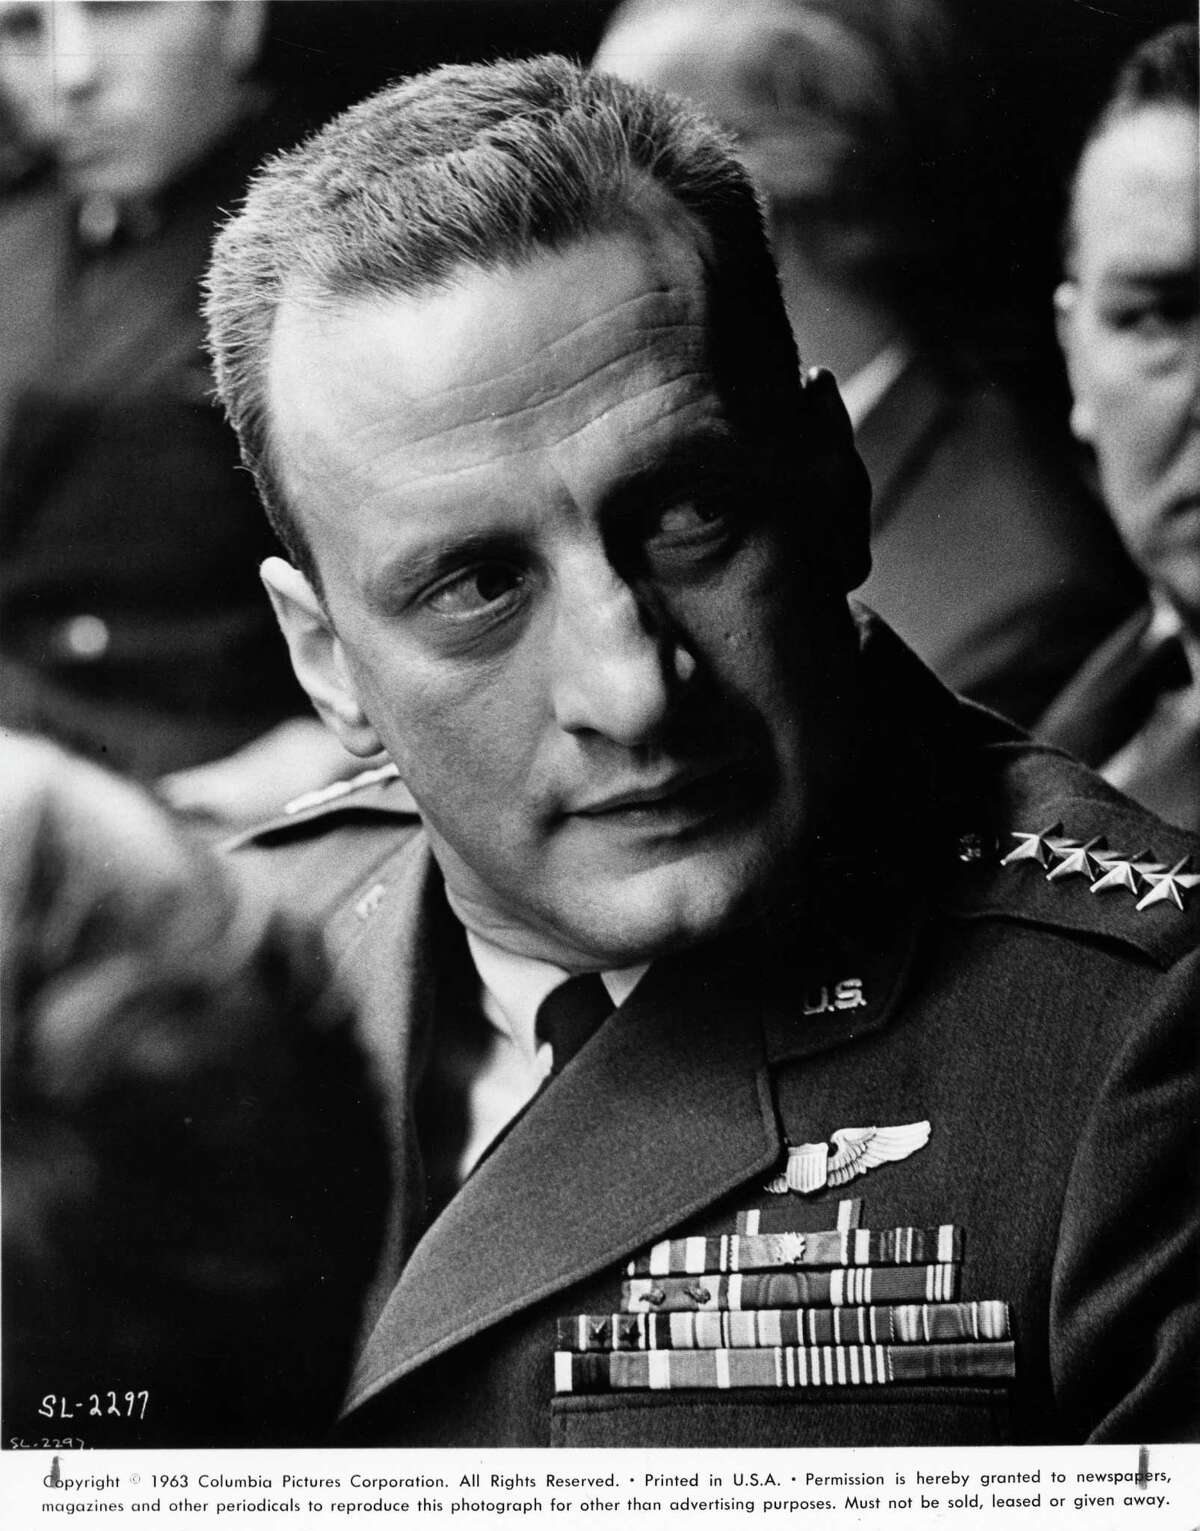 DR. STRANGELOVE OR: HOW I LEARNED TO STOP WORRYING AND LOVE THE BOMB (1963) - George C. Scott as General Buck Turgidson in